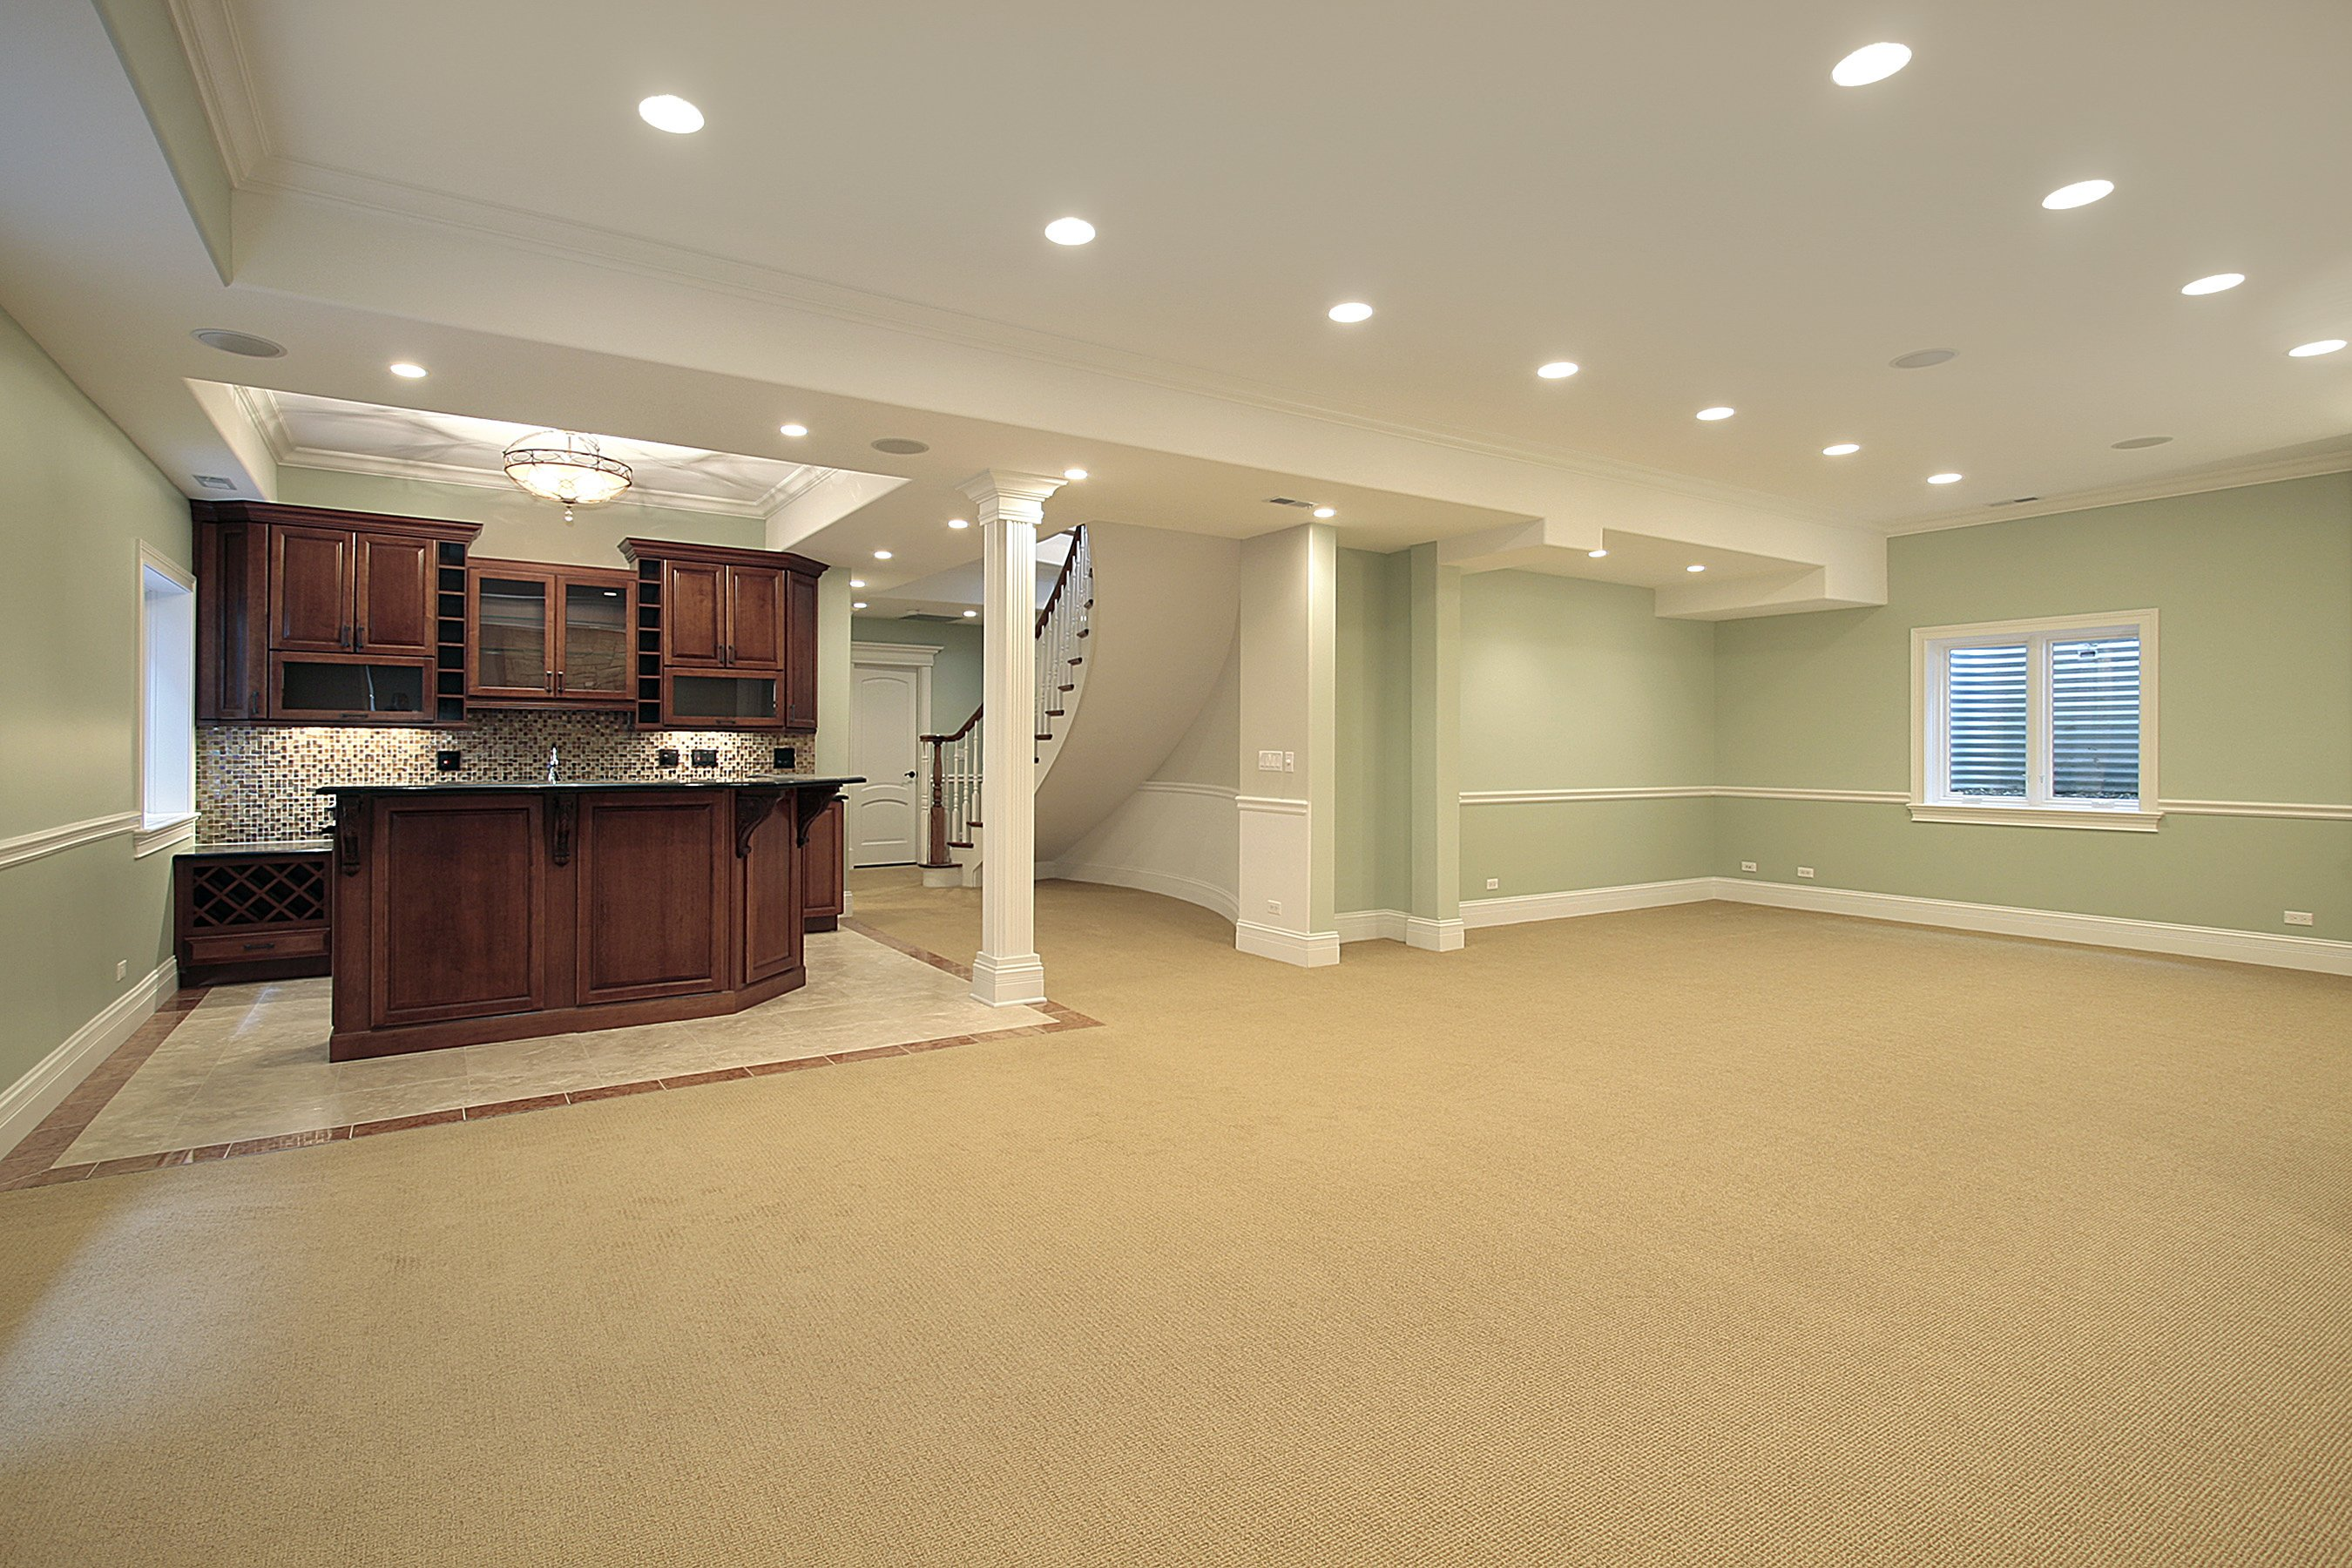 Basement Remodel with luxurious bar, chair rail molding on walls.